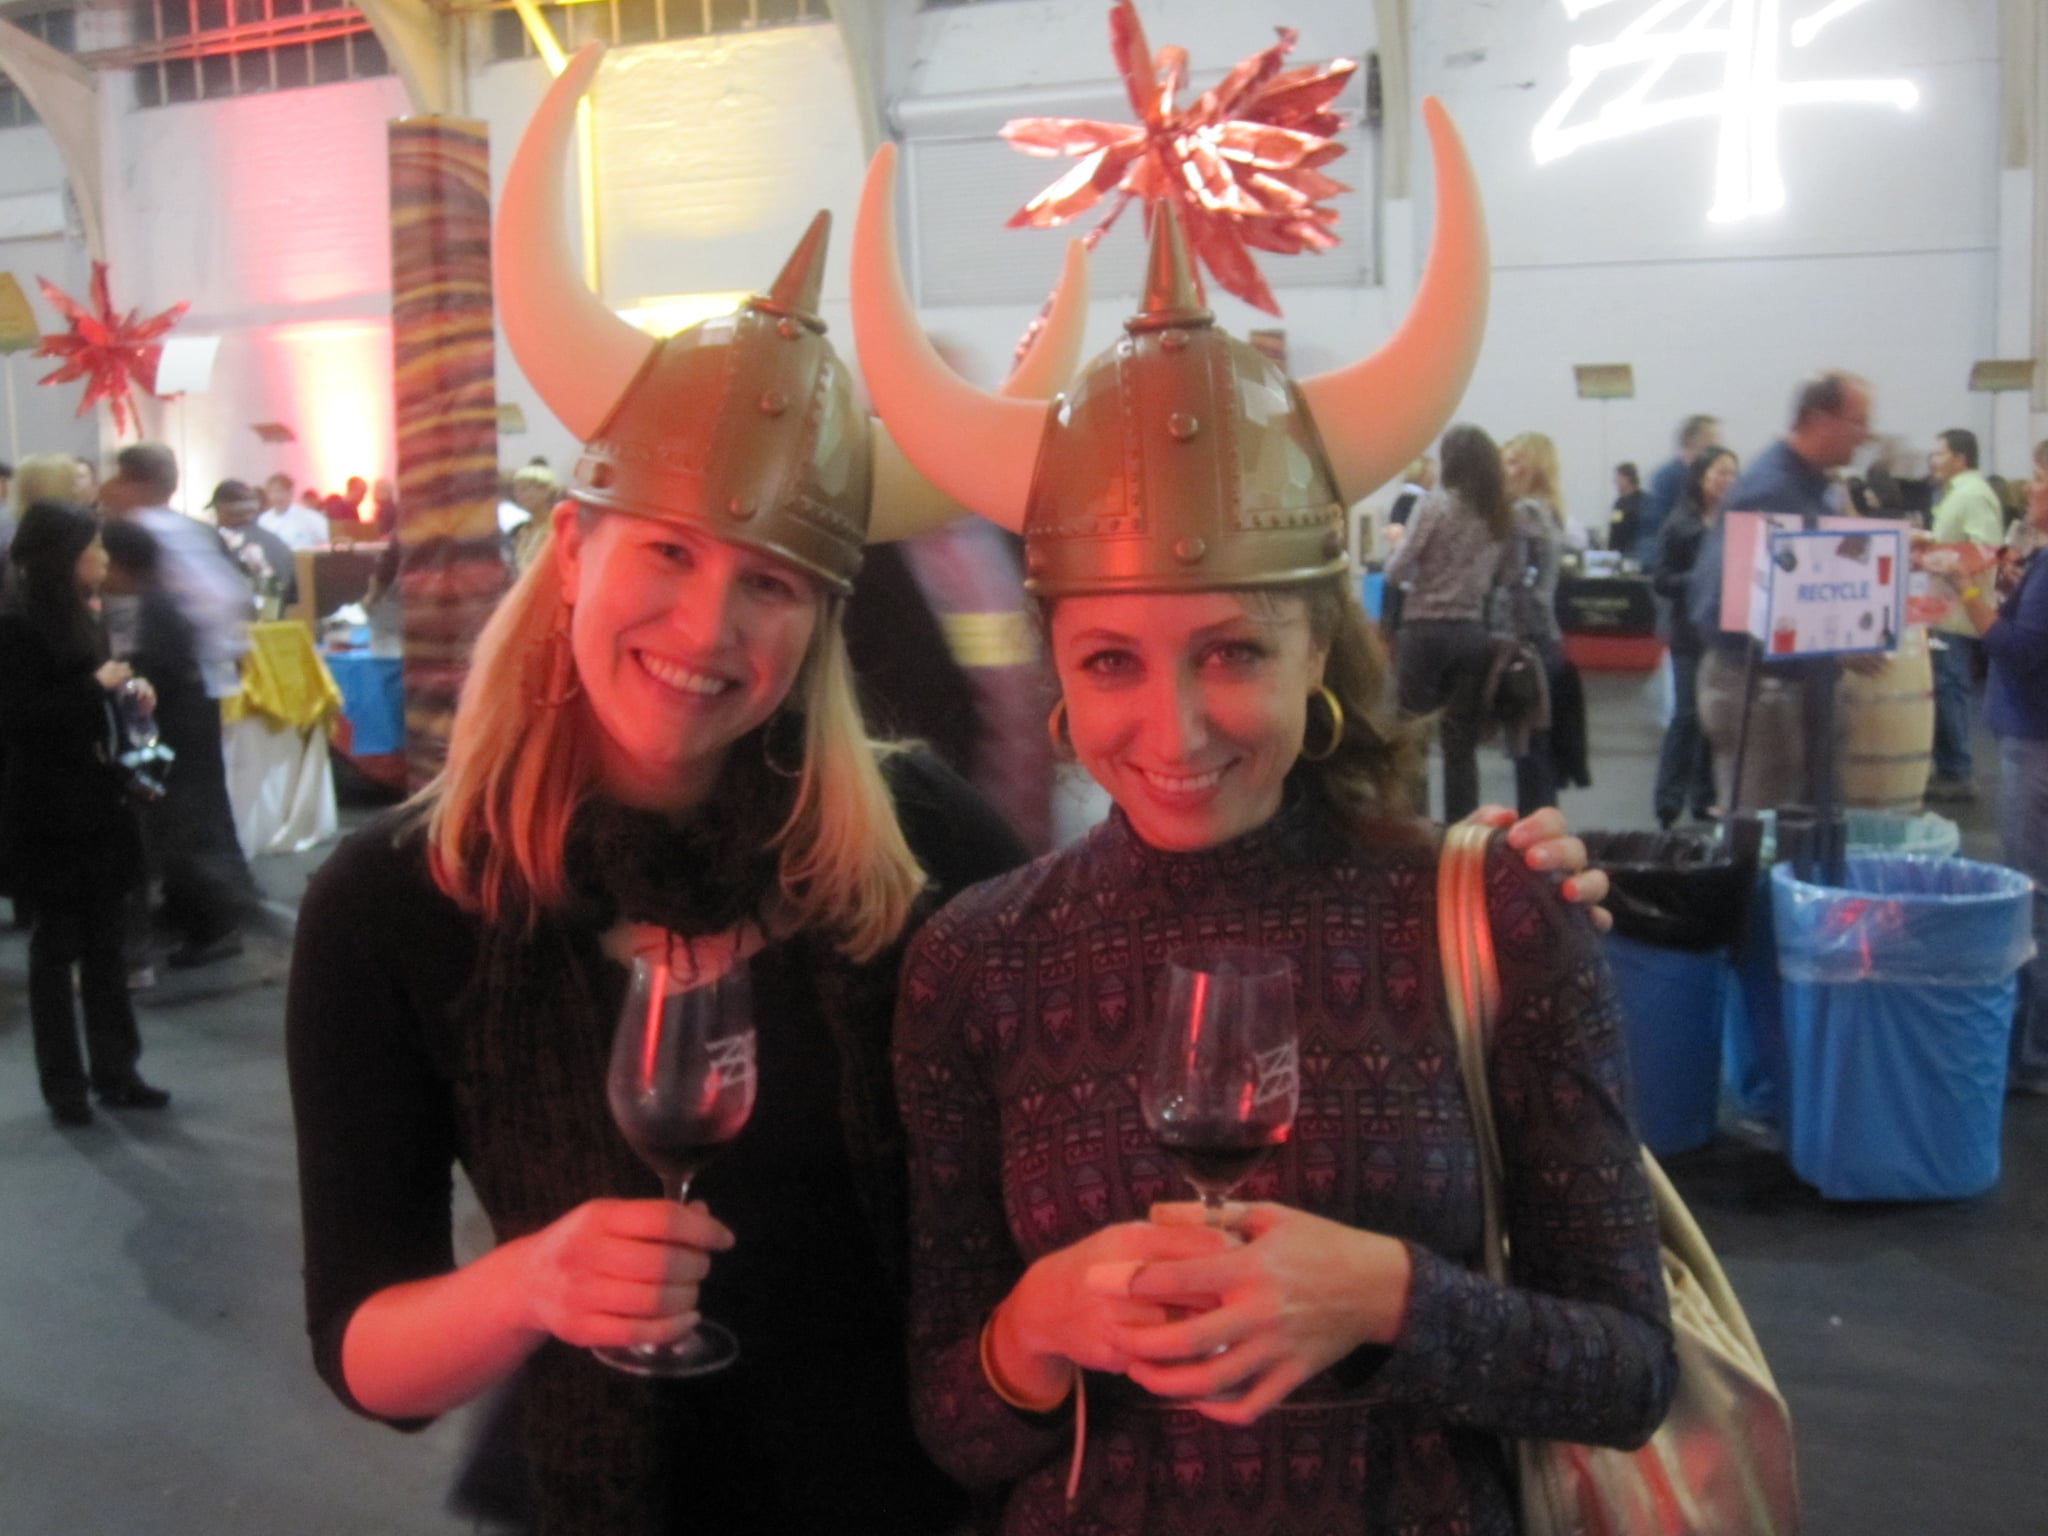 The guys at Murphy-Goode were kind enough to give me and my best friend Viking hats. We wore them for the rest of the tasting.